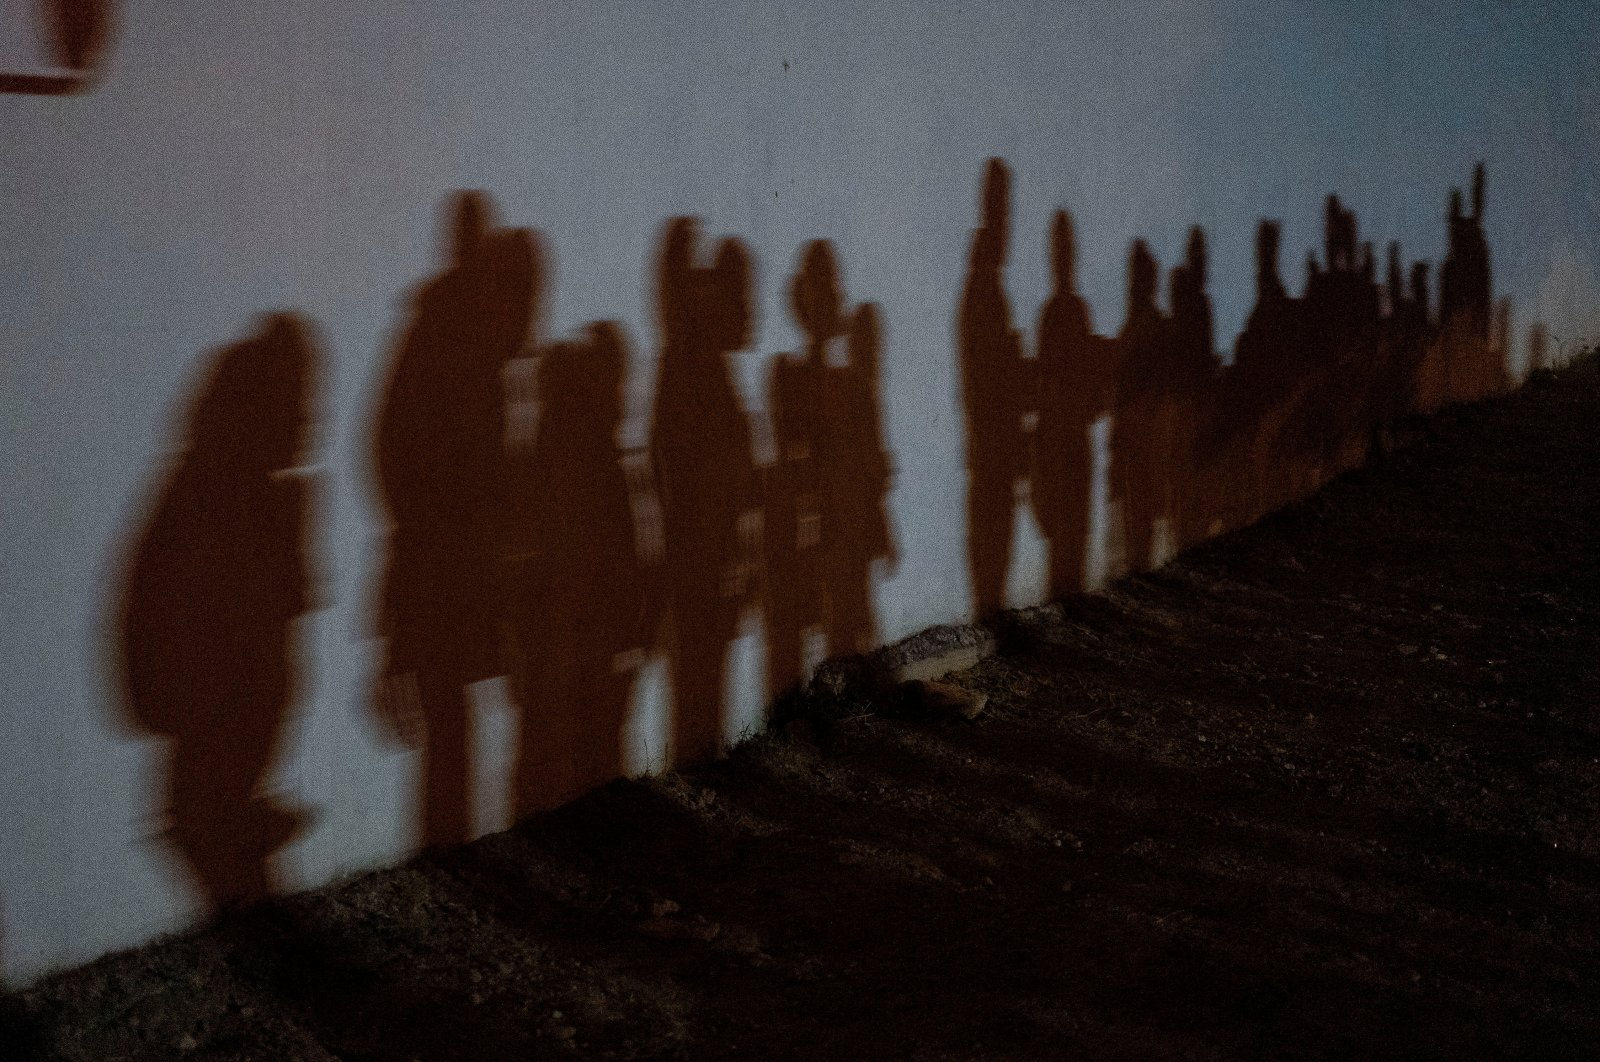 Asylum-seeking migrant families cast shadows on a wall as they form a queue to be processed by the U.S. Border Patrol after crossing the Rio Grande river into the United States from Mexico in Roma, Texas, U.S., Aug. 12, 2021. (Reuters Photo)